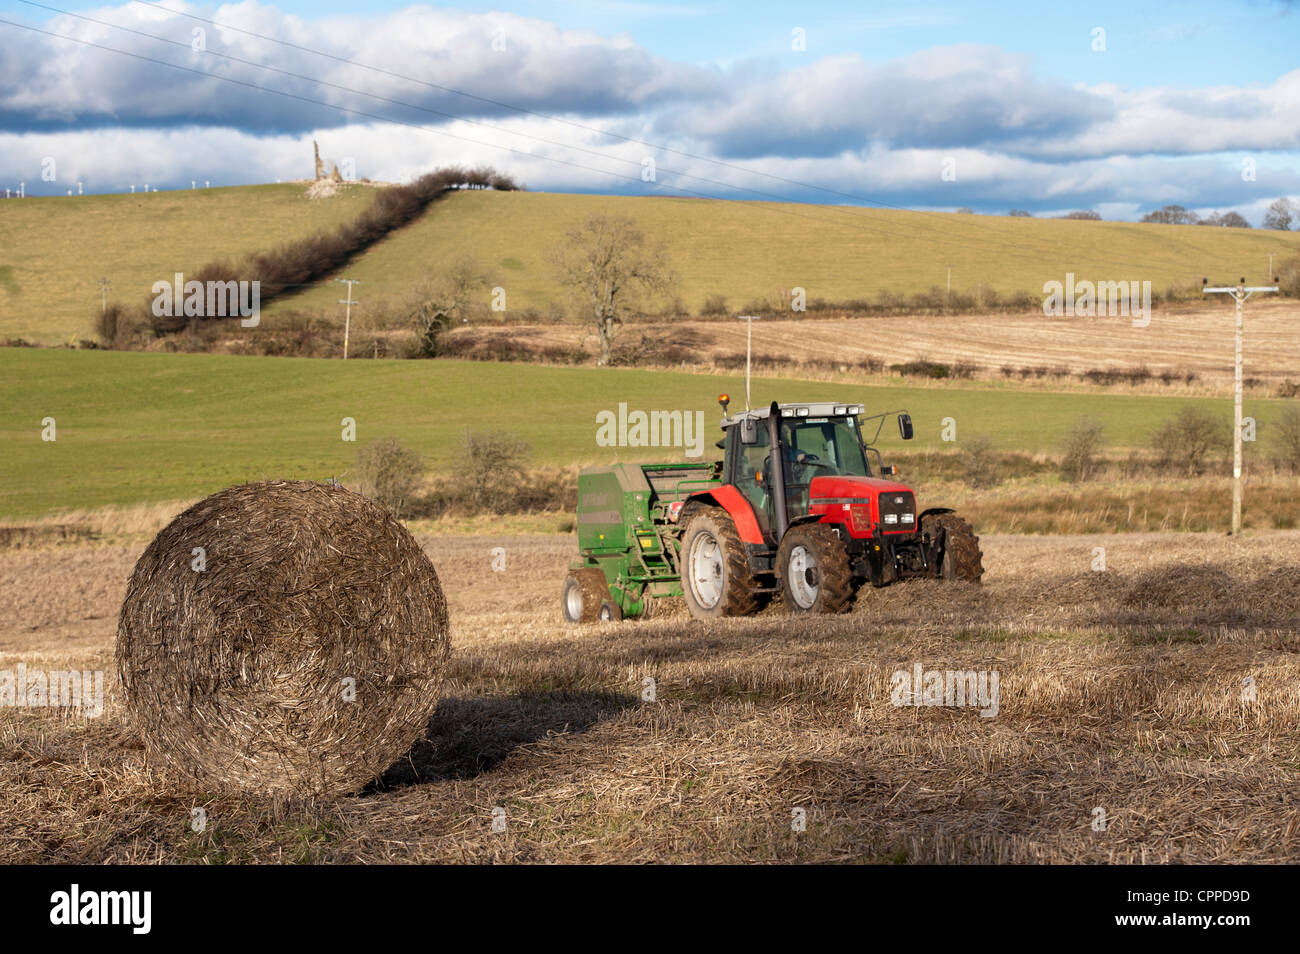 Baling straw with McHale round baler and Massey Ferguson tractor. - Stock  Image